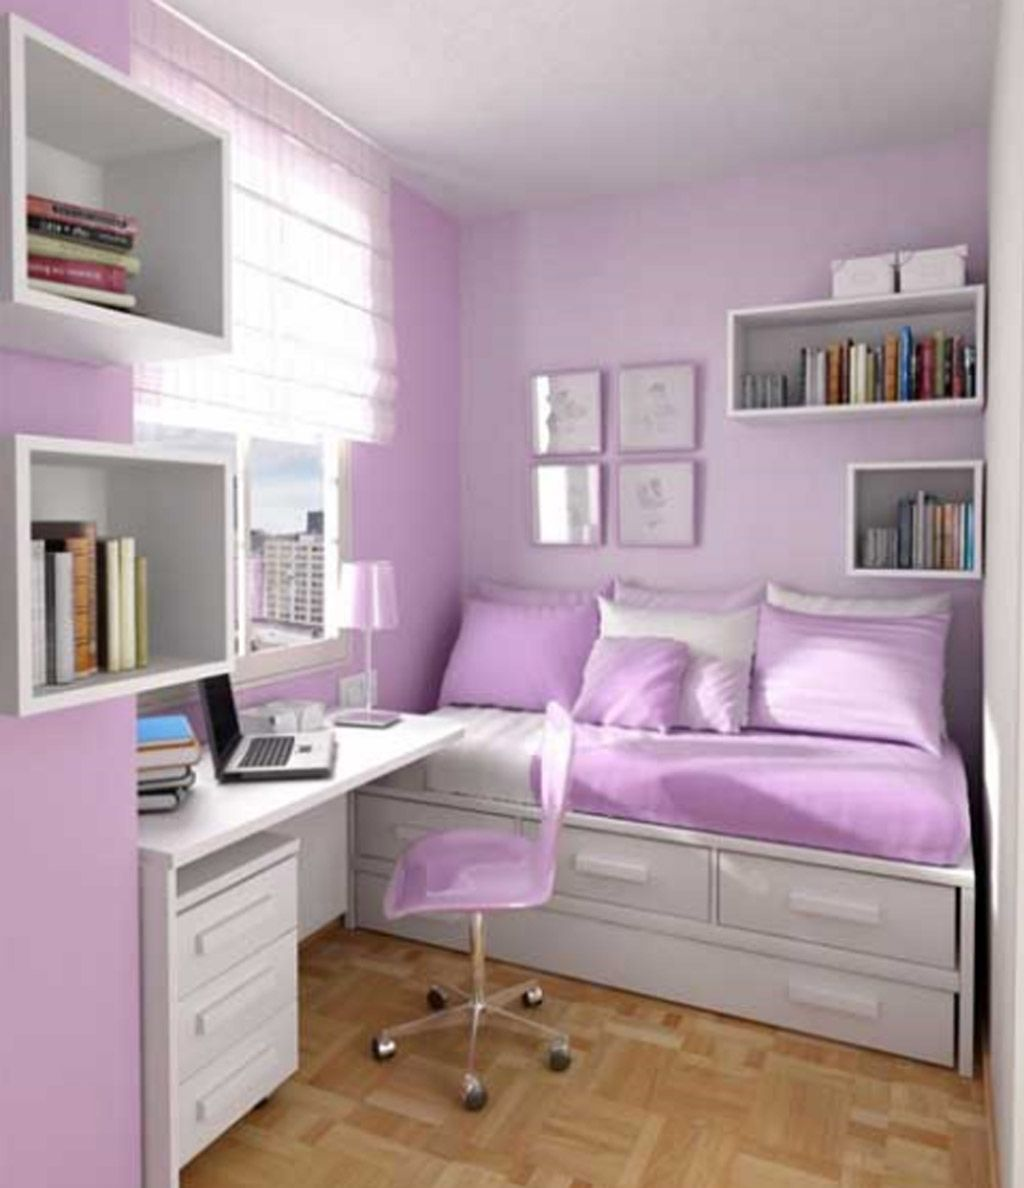 Teenage Room Decor Ideas Decor For Teenage Bedrooms  Room Decorating Ideas Light Purple